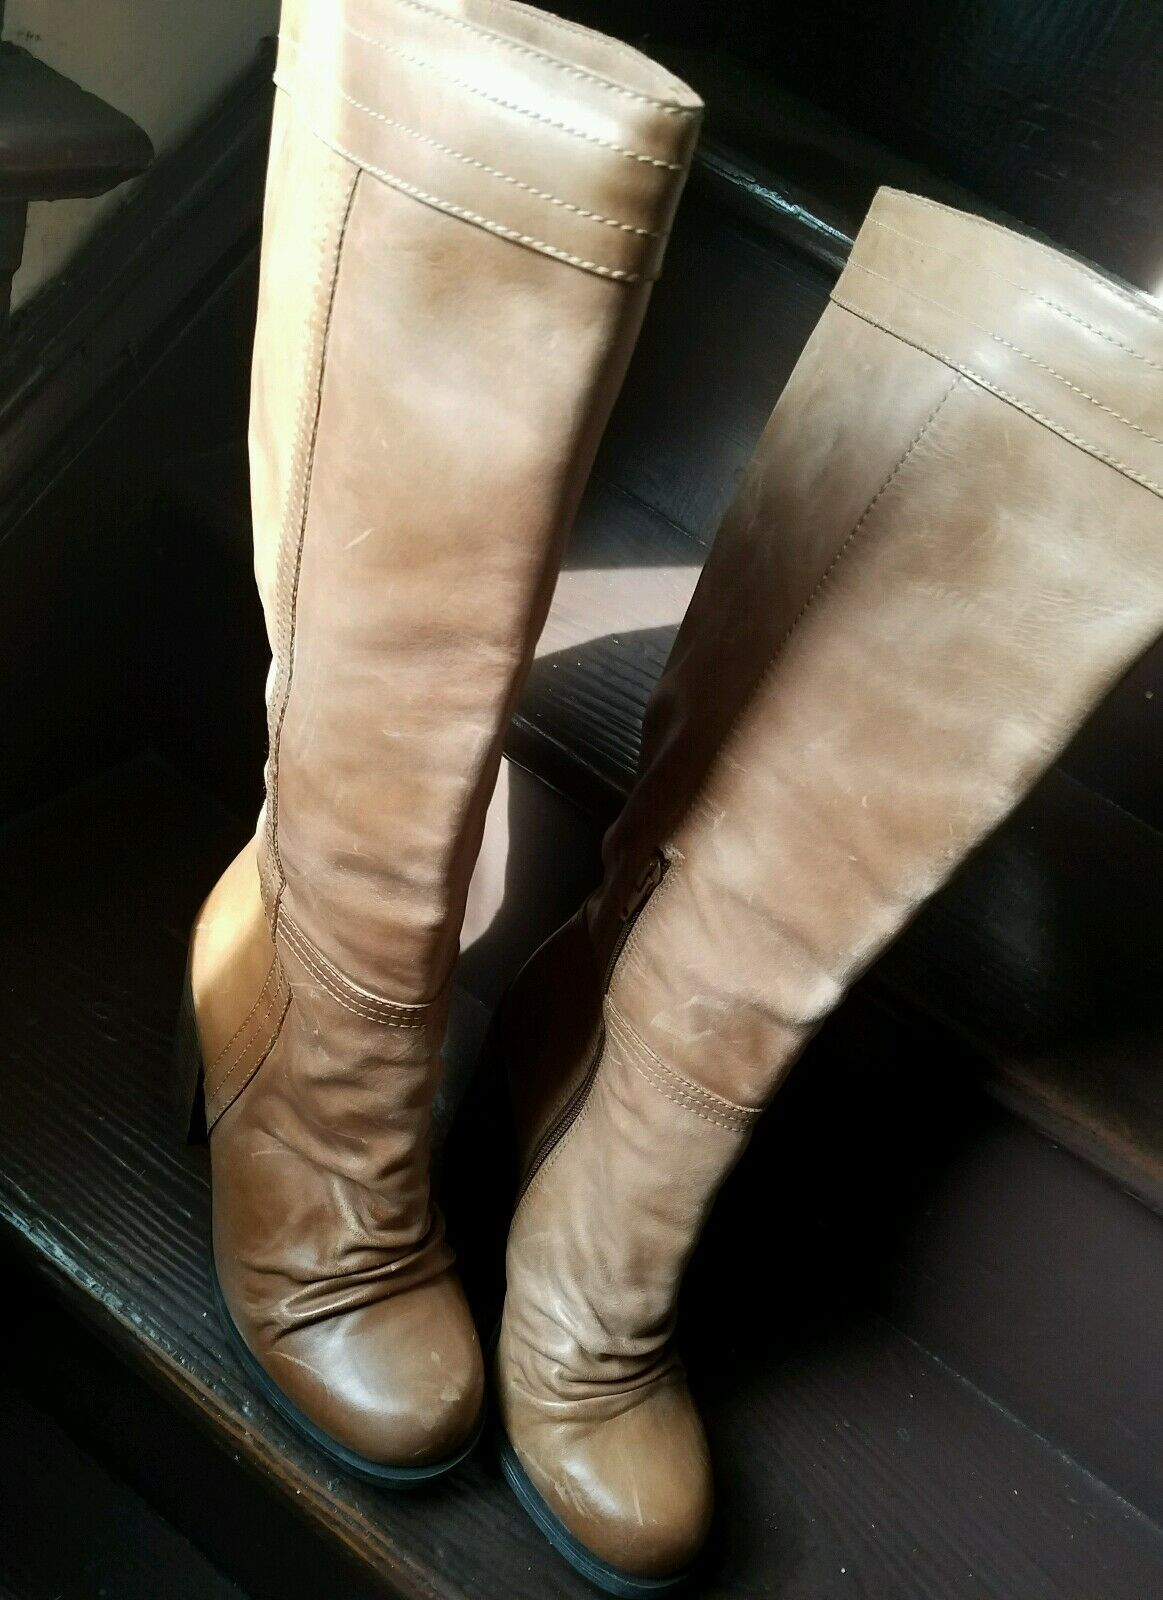 New JESSICA SIMPSON TUSTINY TAN LIMA LIMA LIMA marron LEATHER bottes 8M 8e27a2